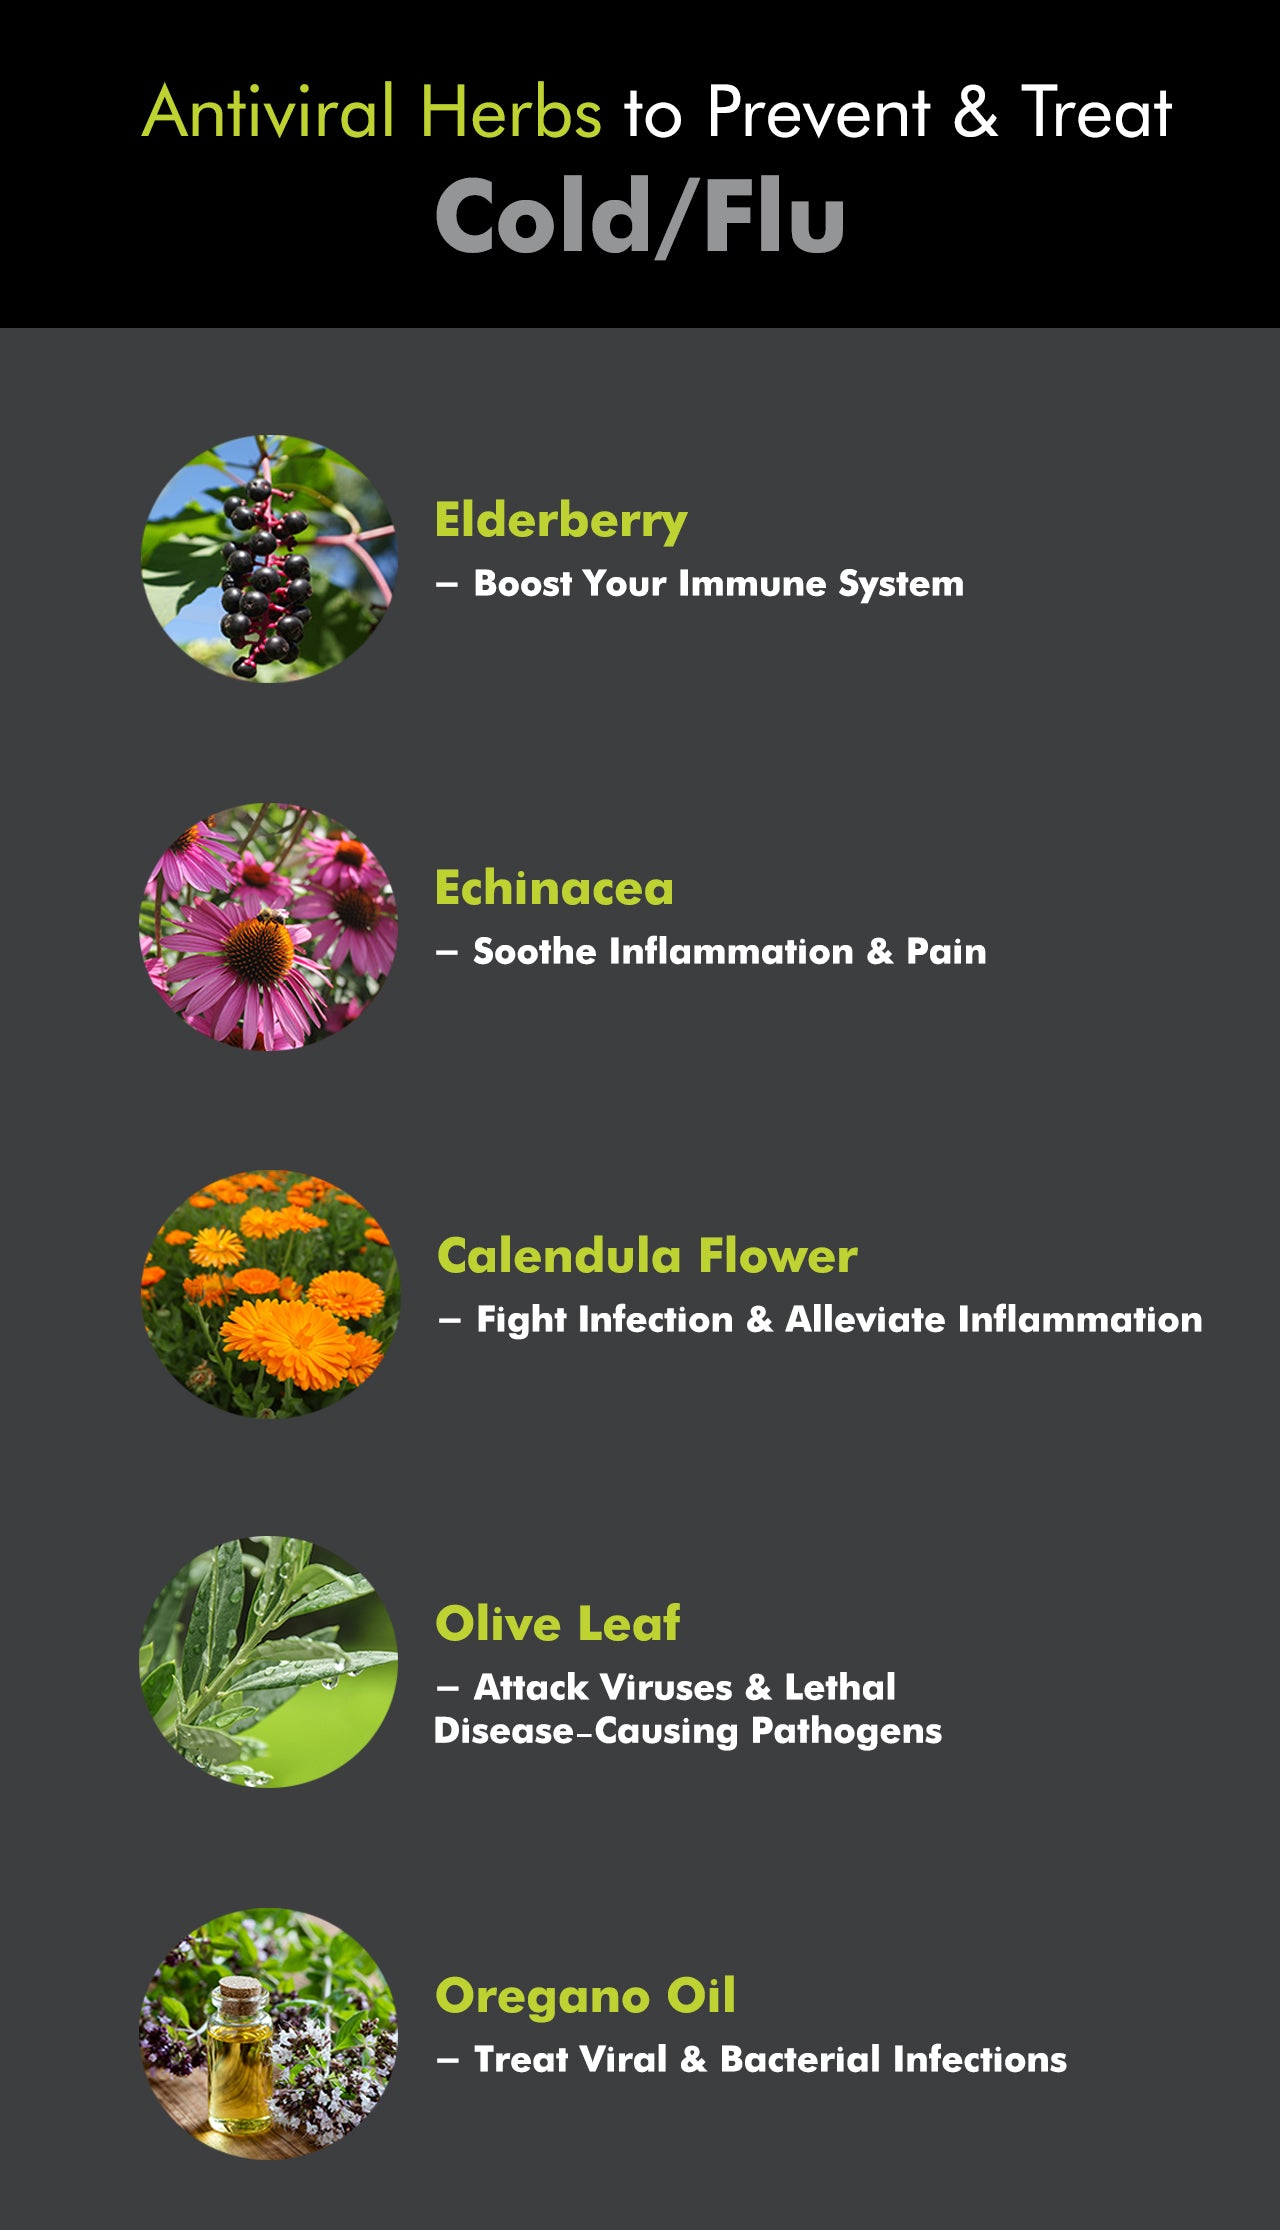 Even with the best of intentions, it's not easy to avoid contracting the cold or flu. And with so many health aids out there, choosing the best remedies for flu and cold relief can be a hassle. Although conventional methods for flu and cold treatment are more prevalent, consider these natural remedies for cold and flu.